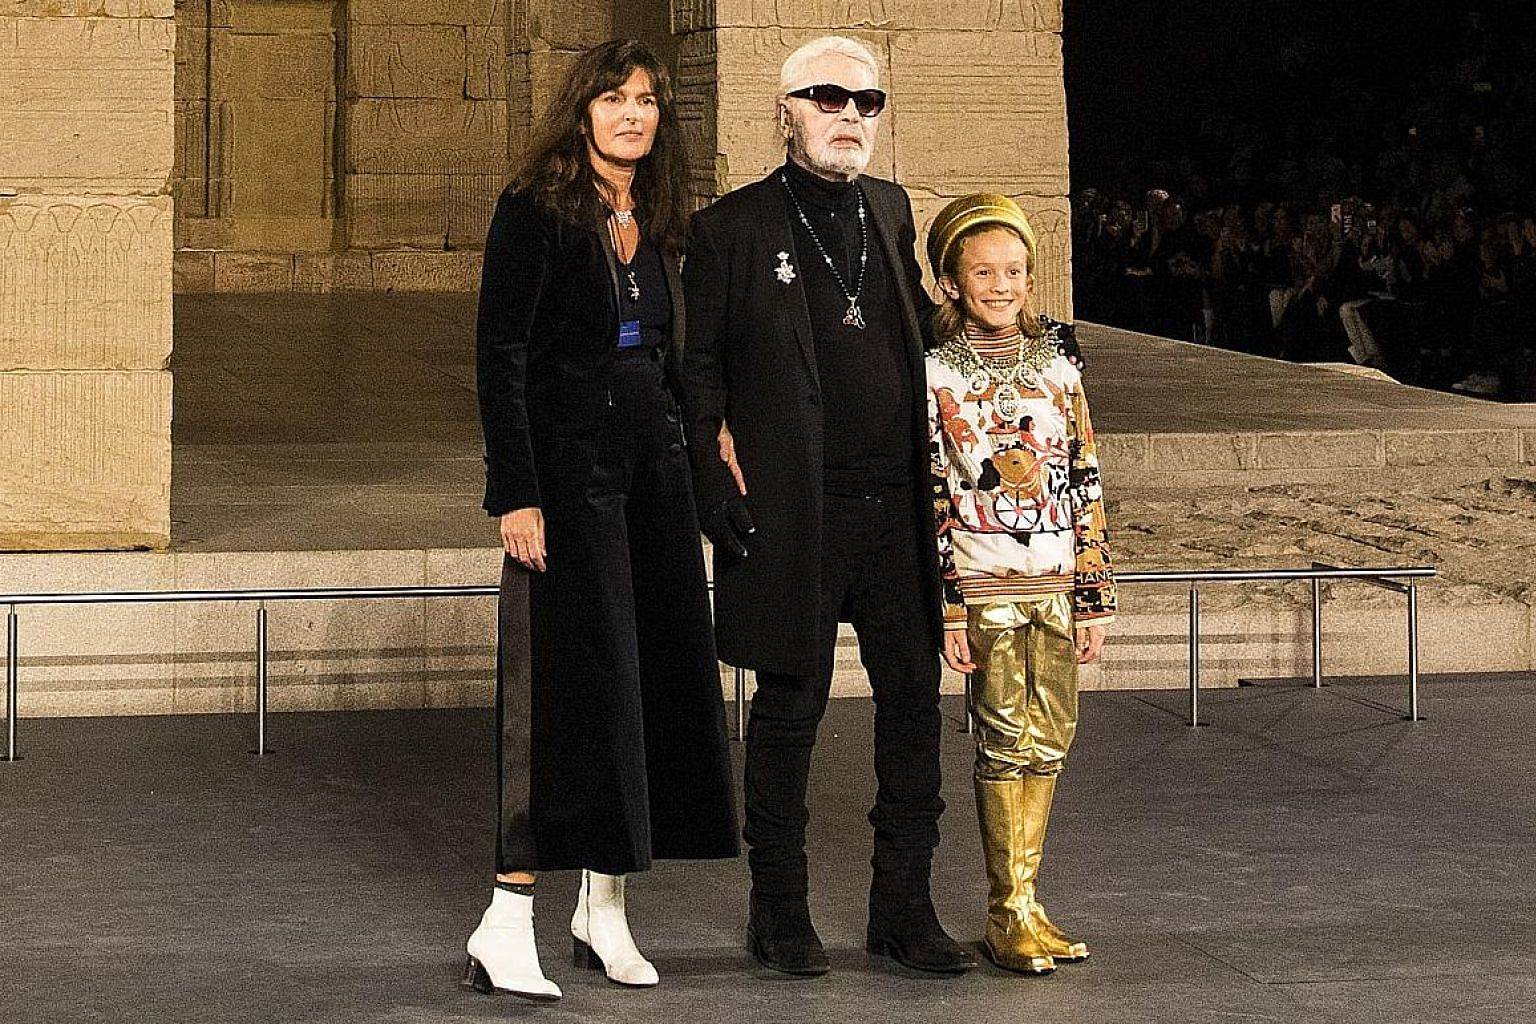 Karl Lagerfeld with Virginie Viard and Hudson Kroenig, his godson, at the Chanel Metiers D'Art show in New York in December. She has become Chanel's new creative director.